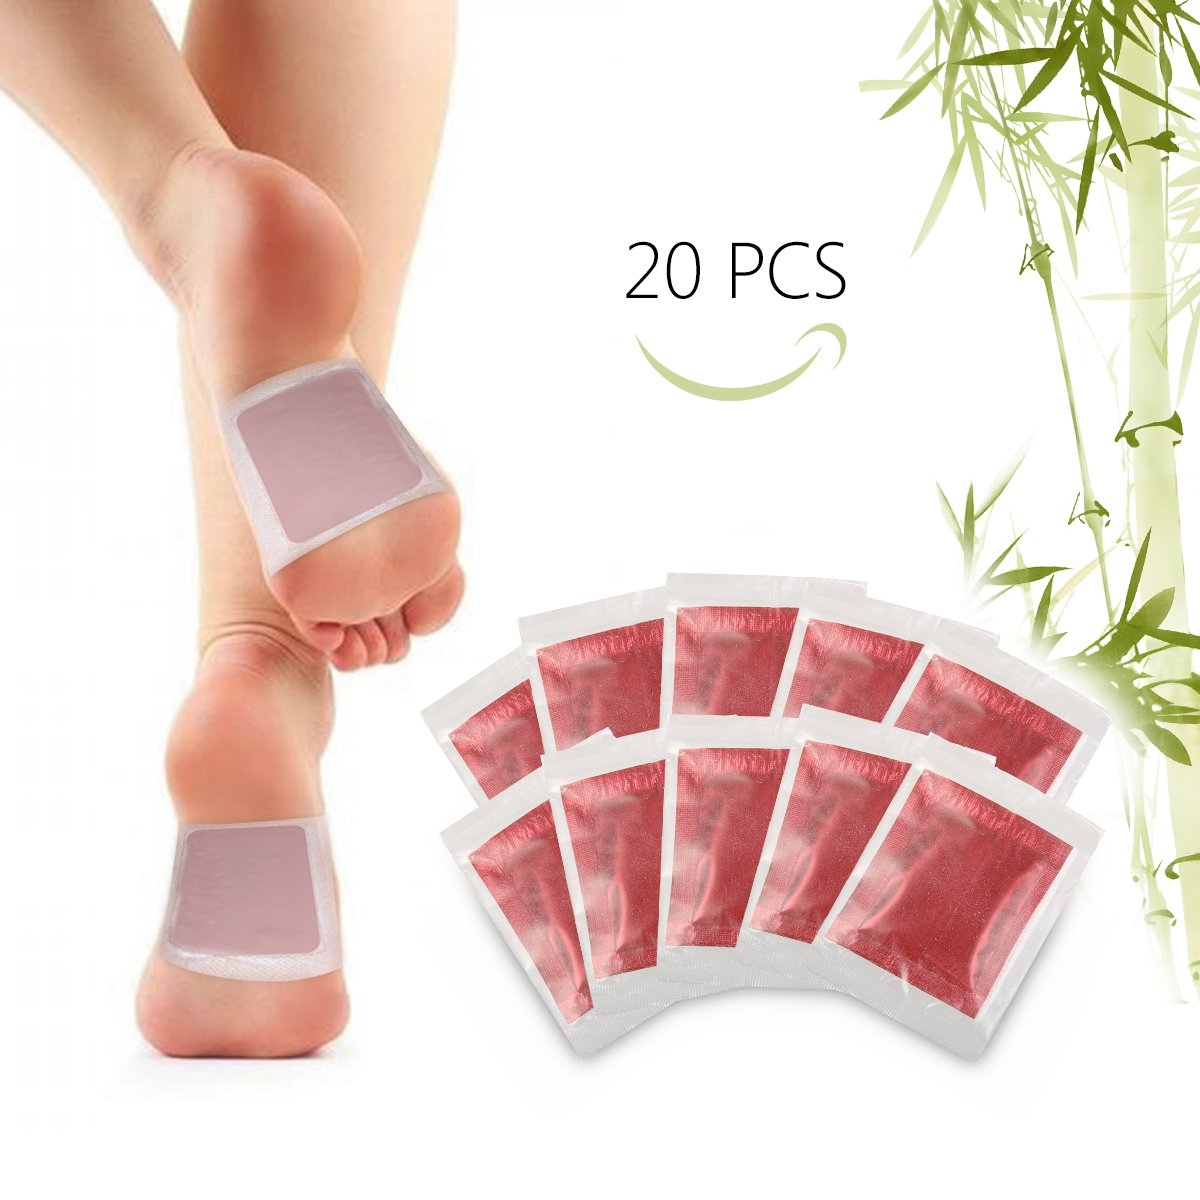 Foot Pads, Y.F.M Bamboo Vinegar Charcoal Foot Patch, 20 Pcs Relieve Tired Foot Pads, Pain Relief Foot Care Relaxing Sheet Help Deep Sleep